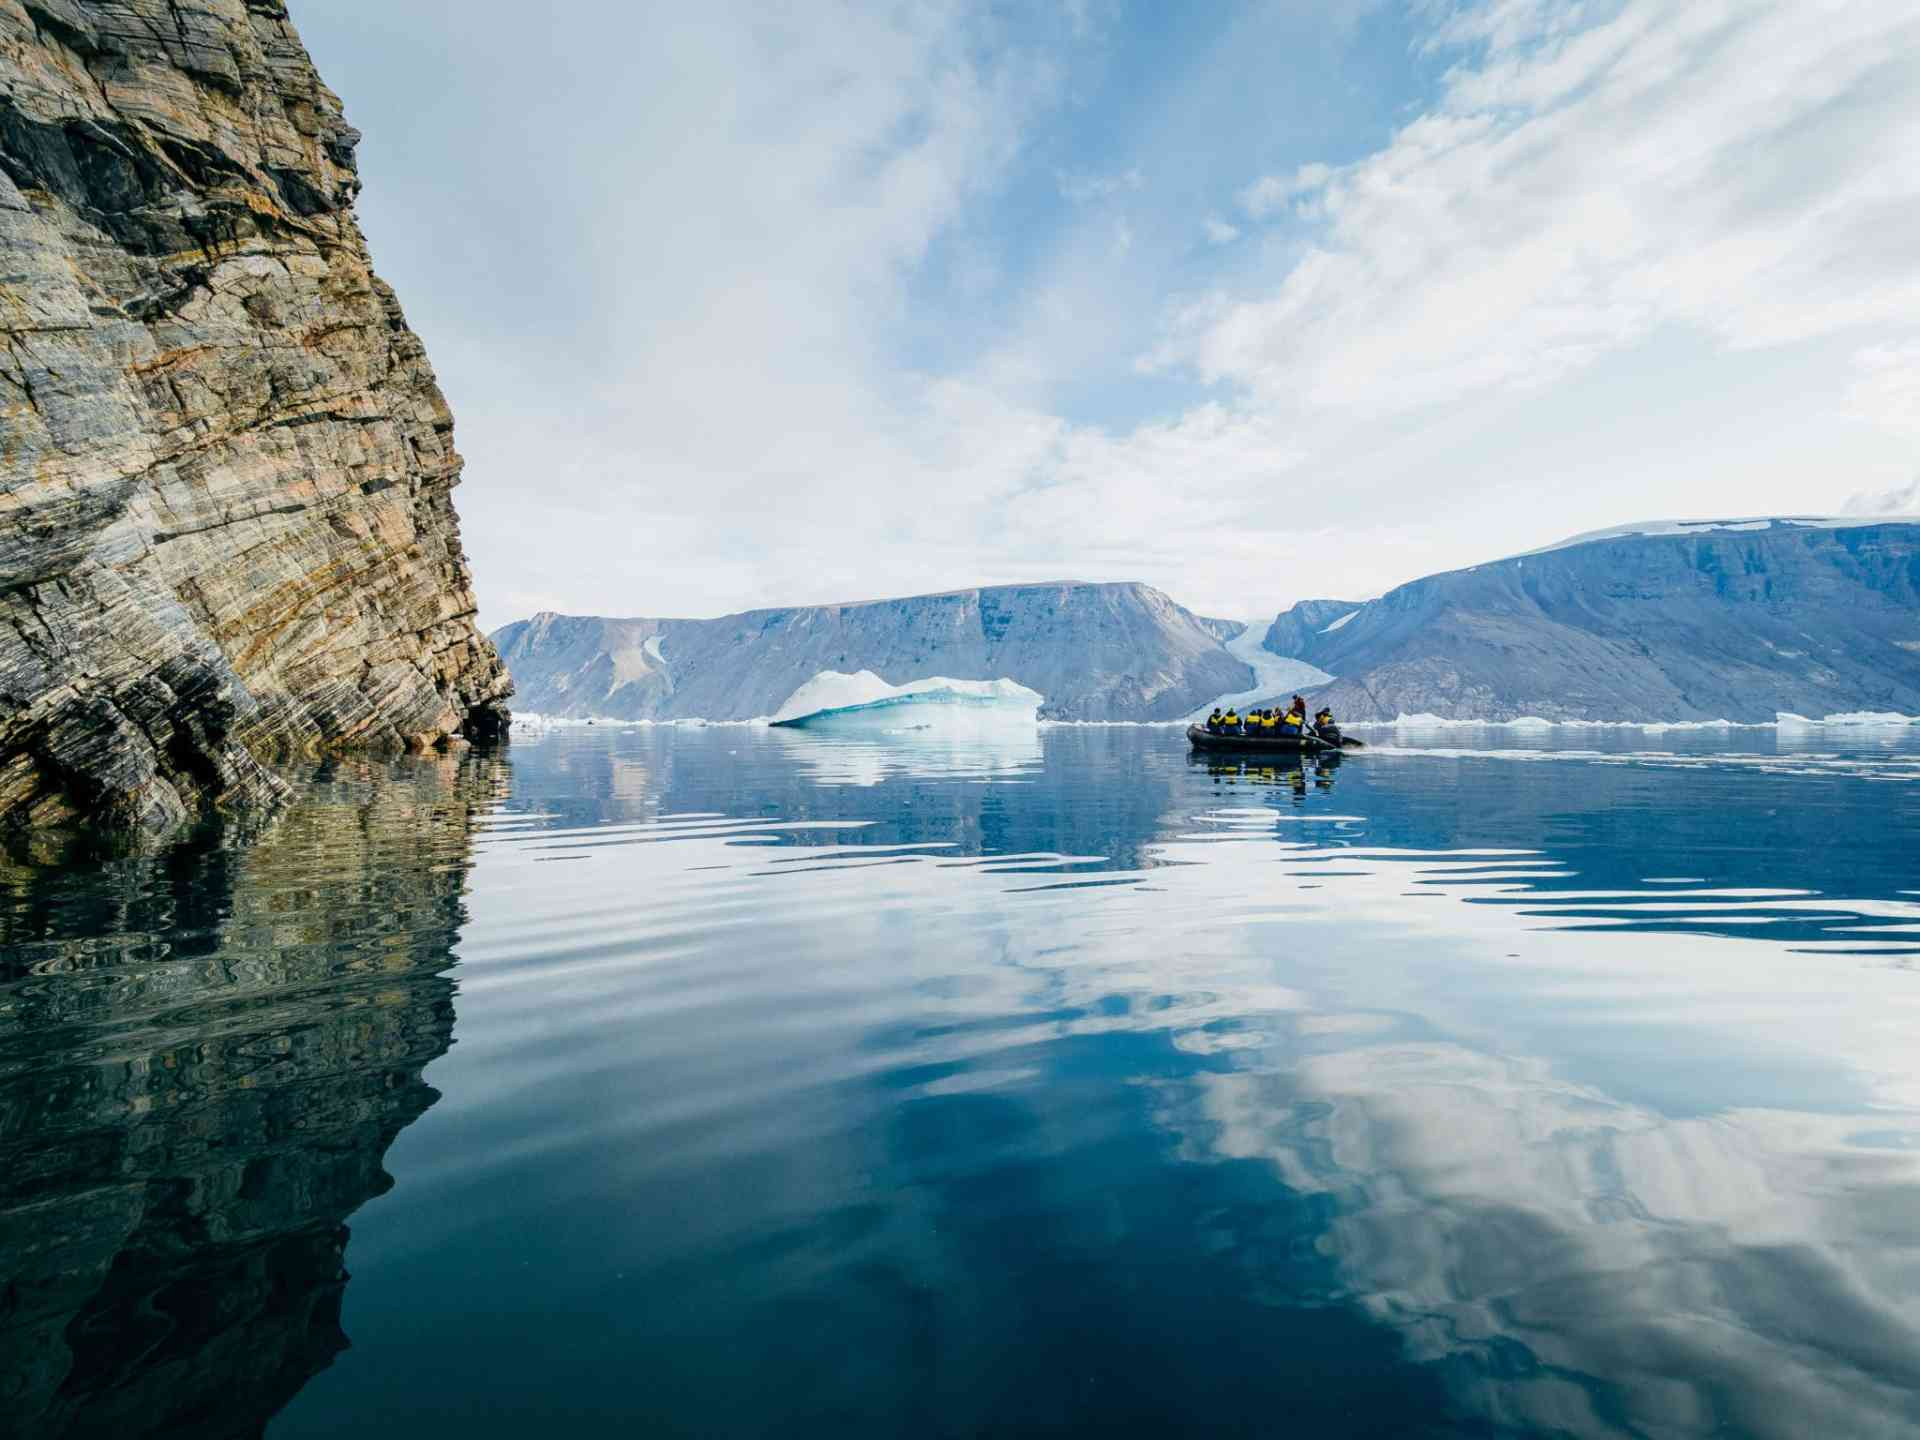 Zodiac cruise through the picturesque mountain landscape by Aurora Expeditions